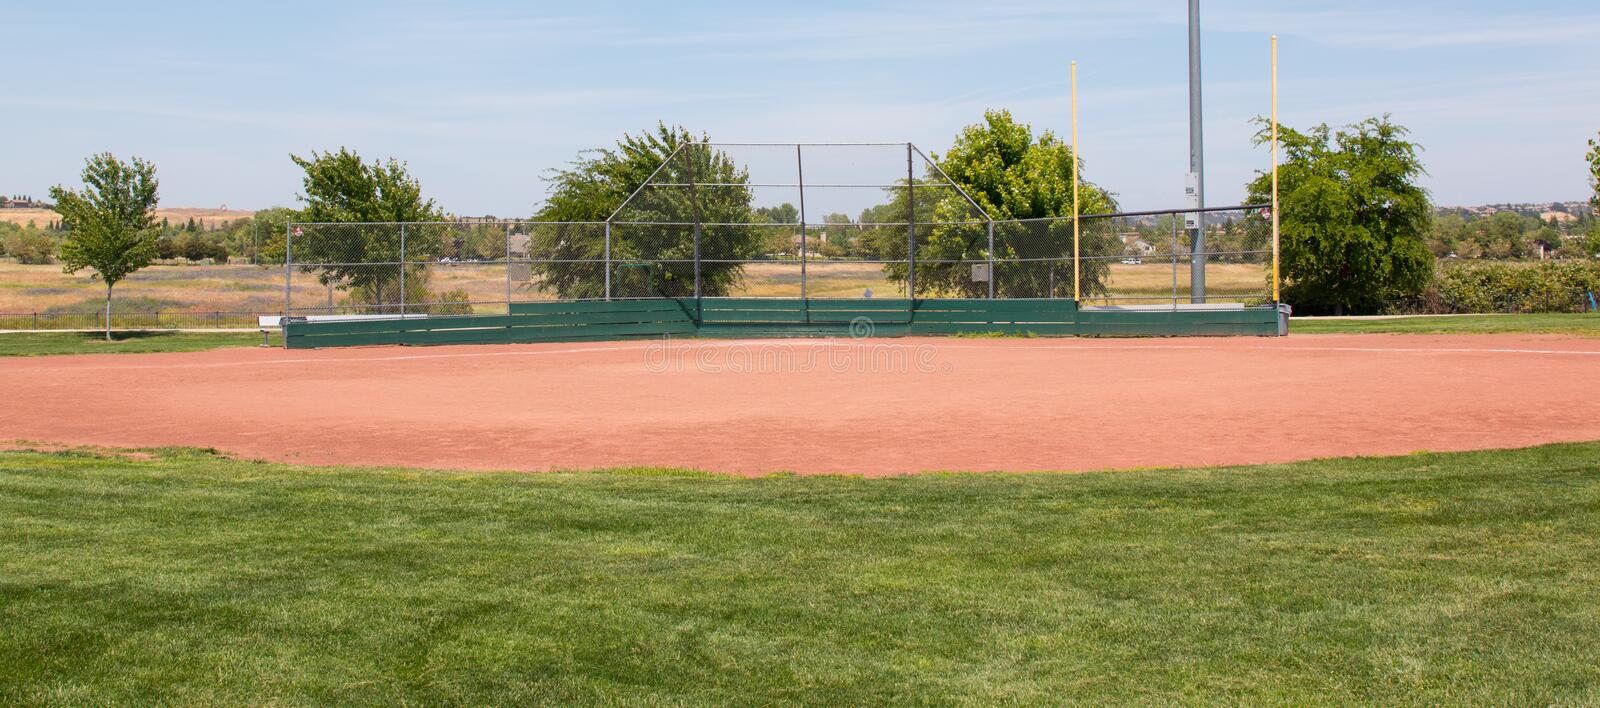 Little League Baseball Field. With green grass, brown dirt and no people royalty free stock photo